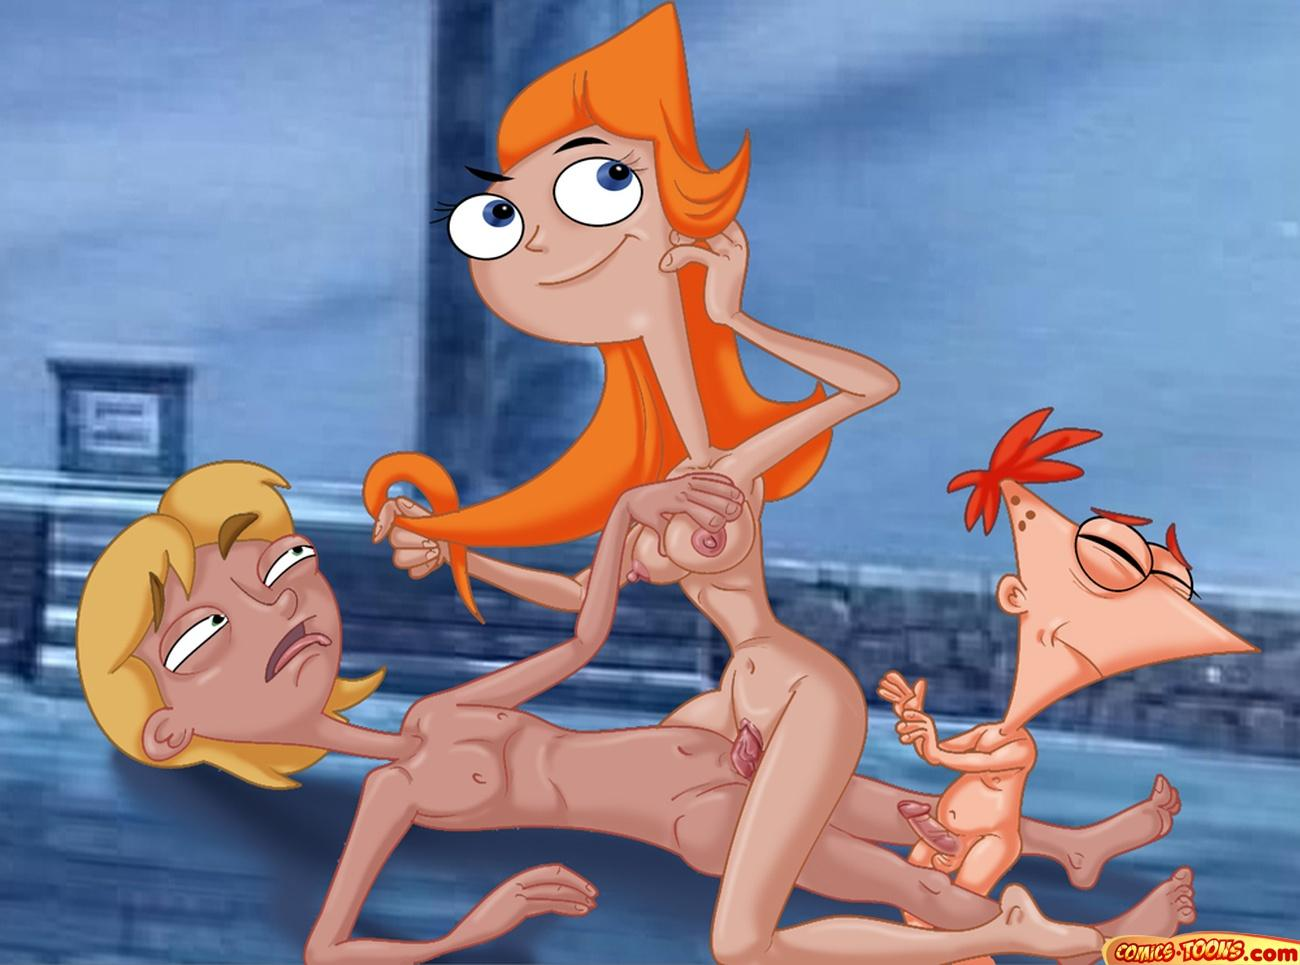 feet phineas and candace ferb Regular show gay porn comic